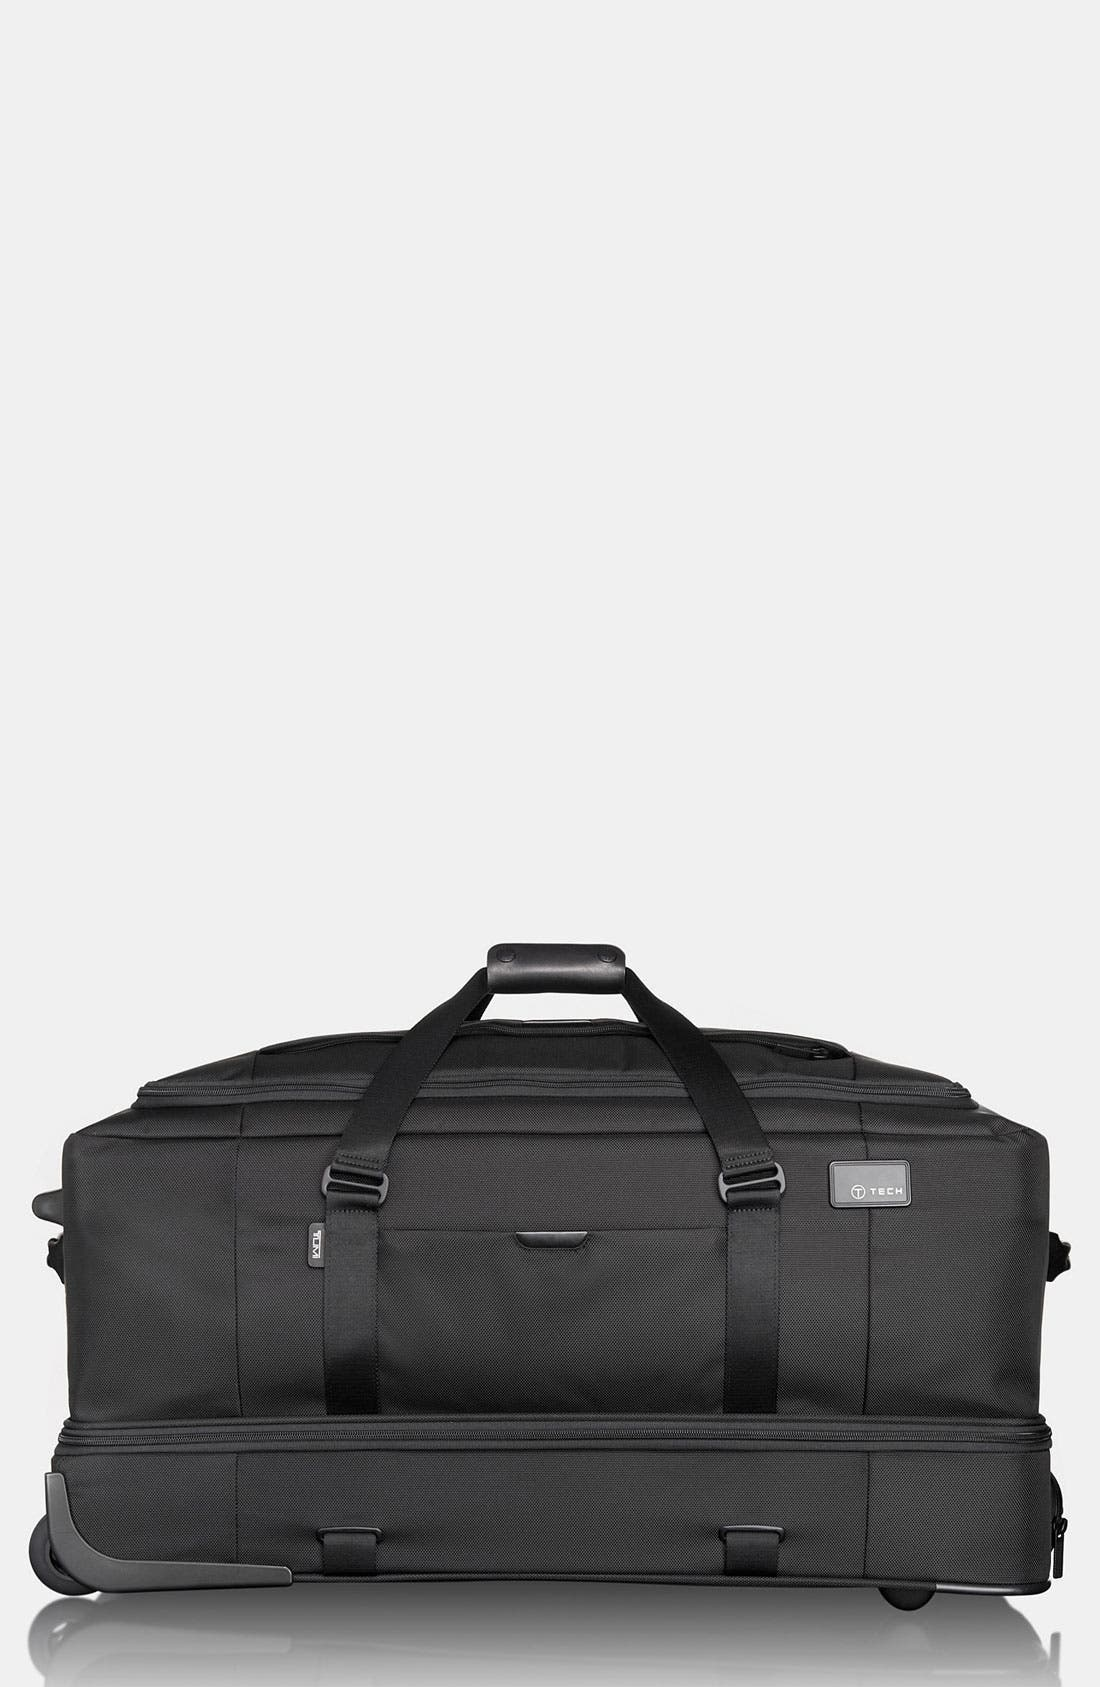 Alternate Image 1 Selected - Tumi 'T-Tech Network' Wheeled Split Duffel Bag